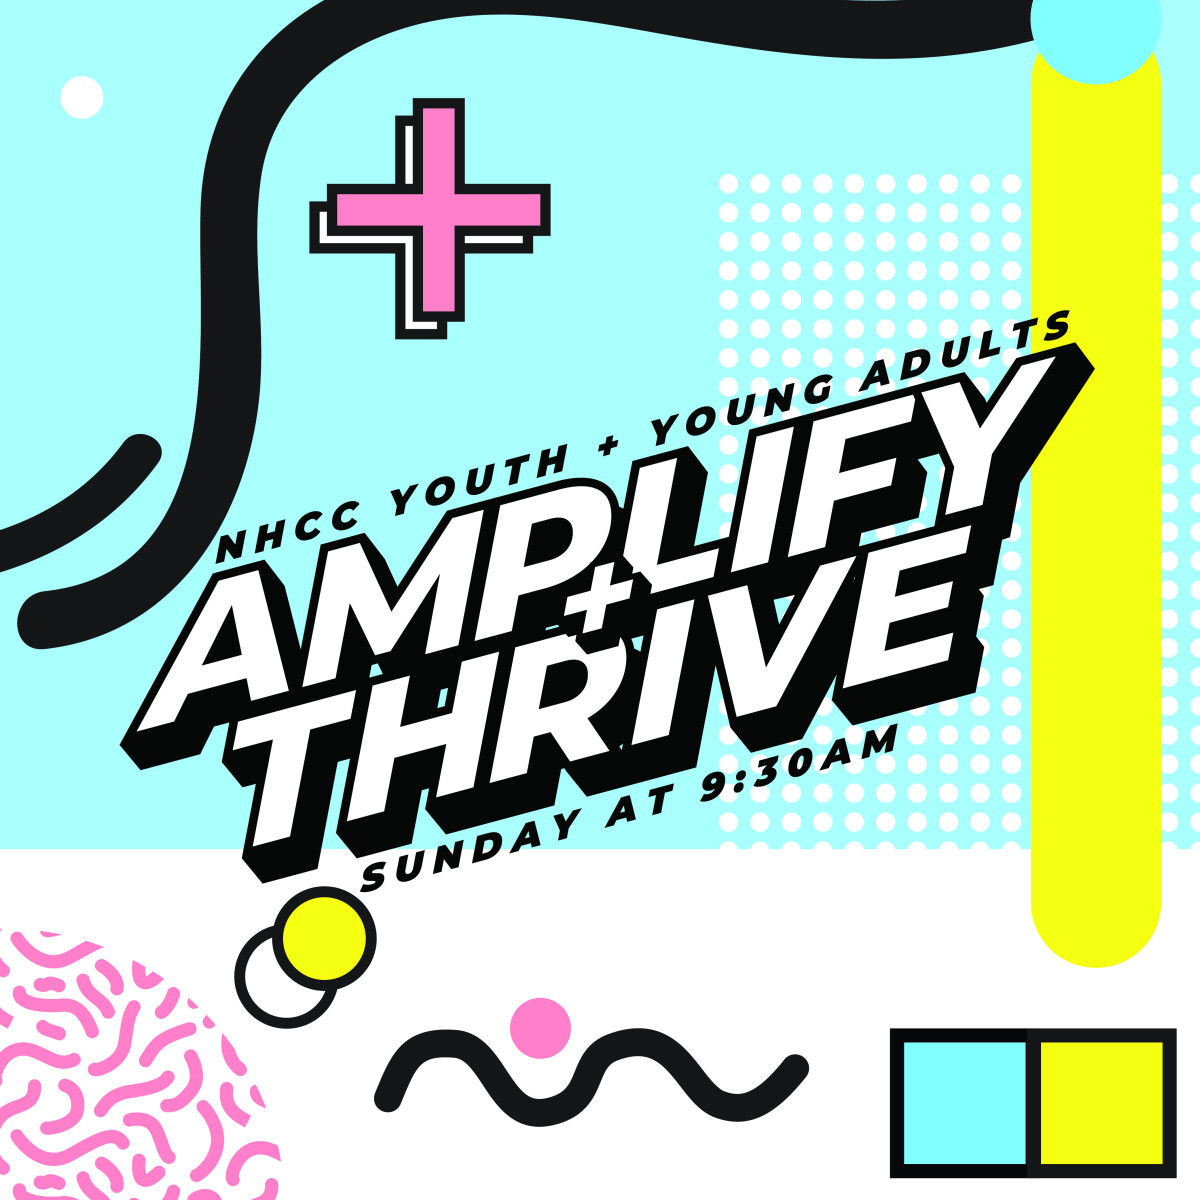 Amplify+Thrive Youth Service